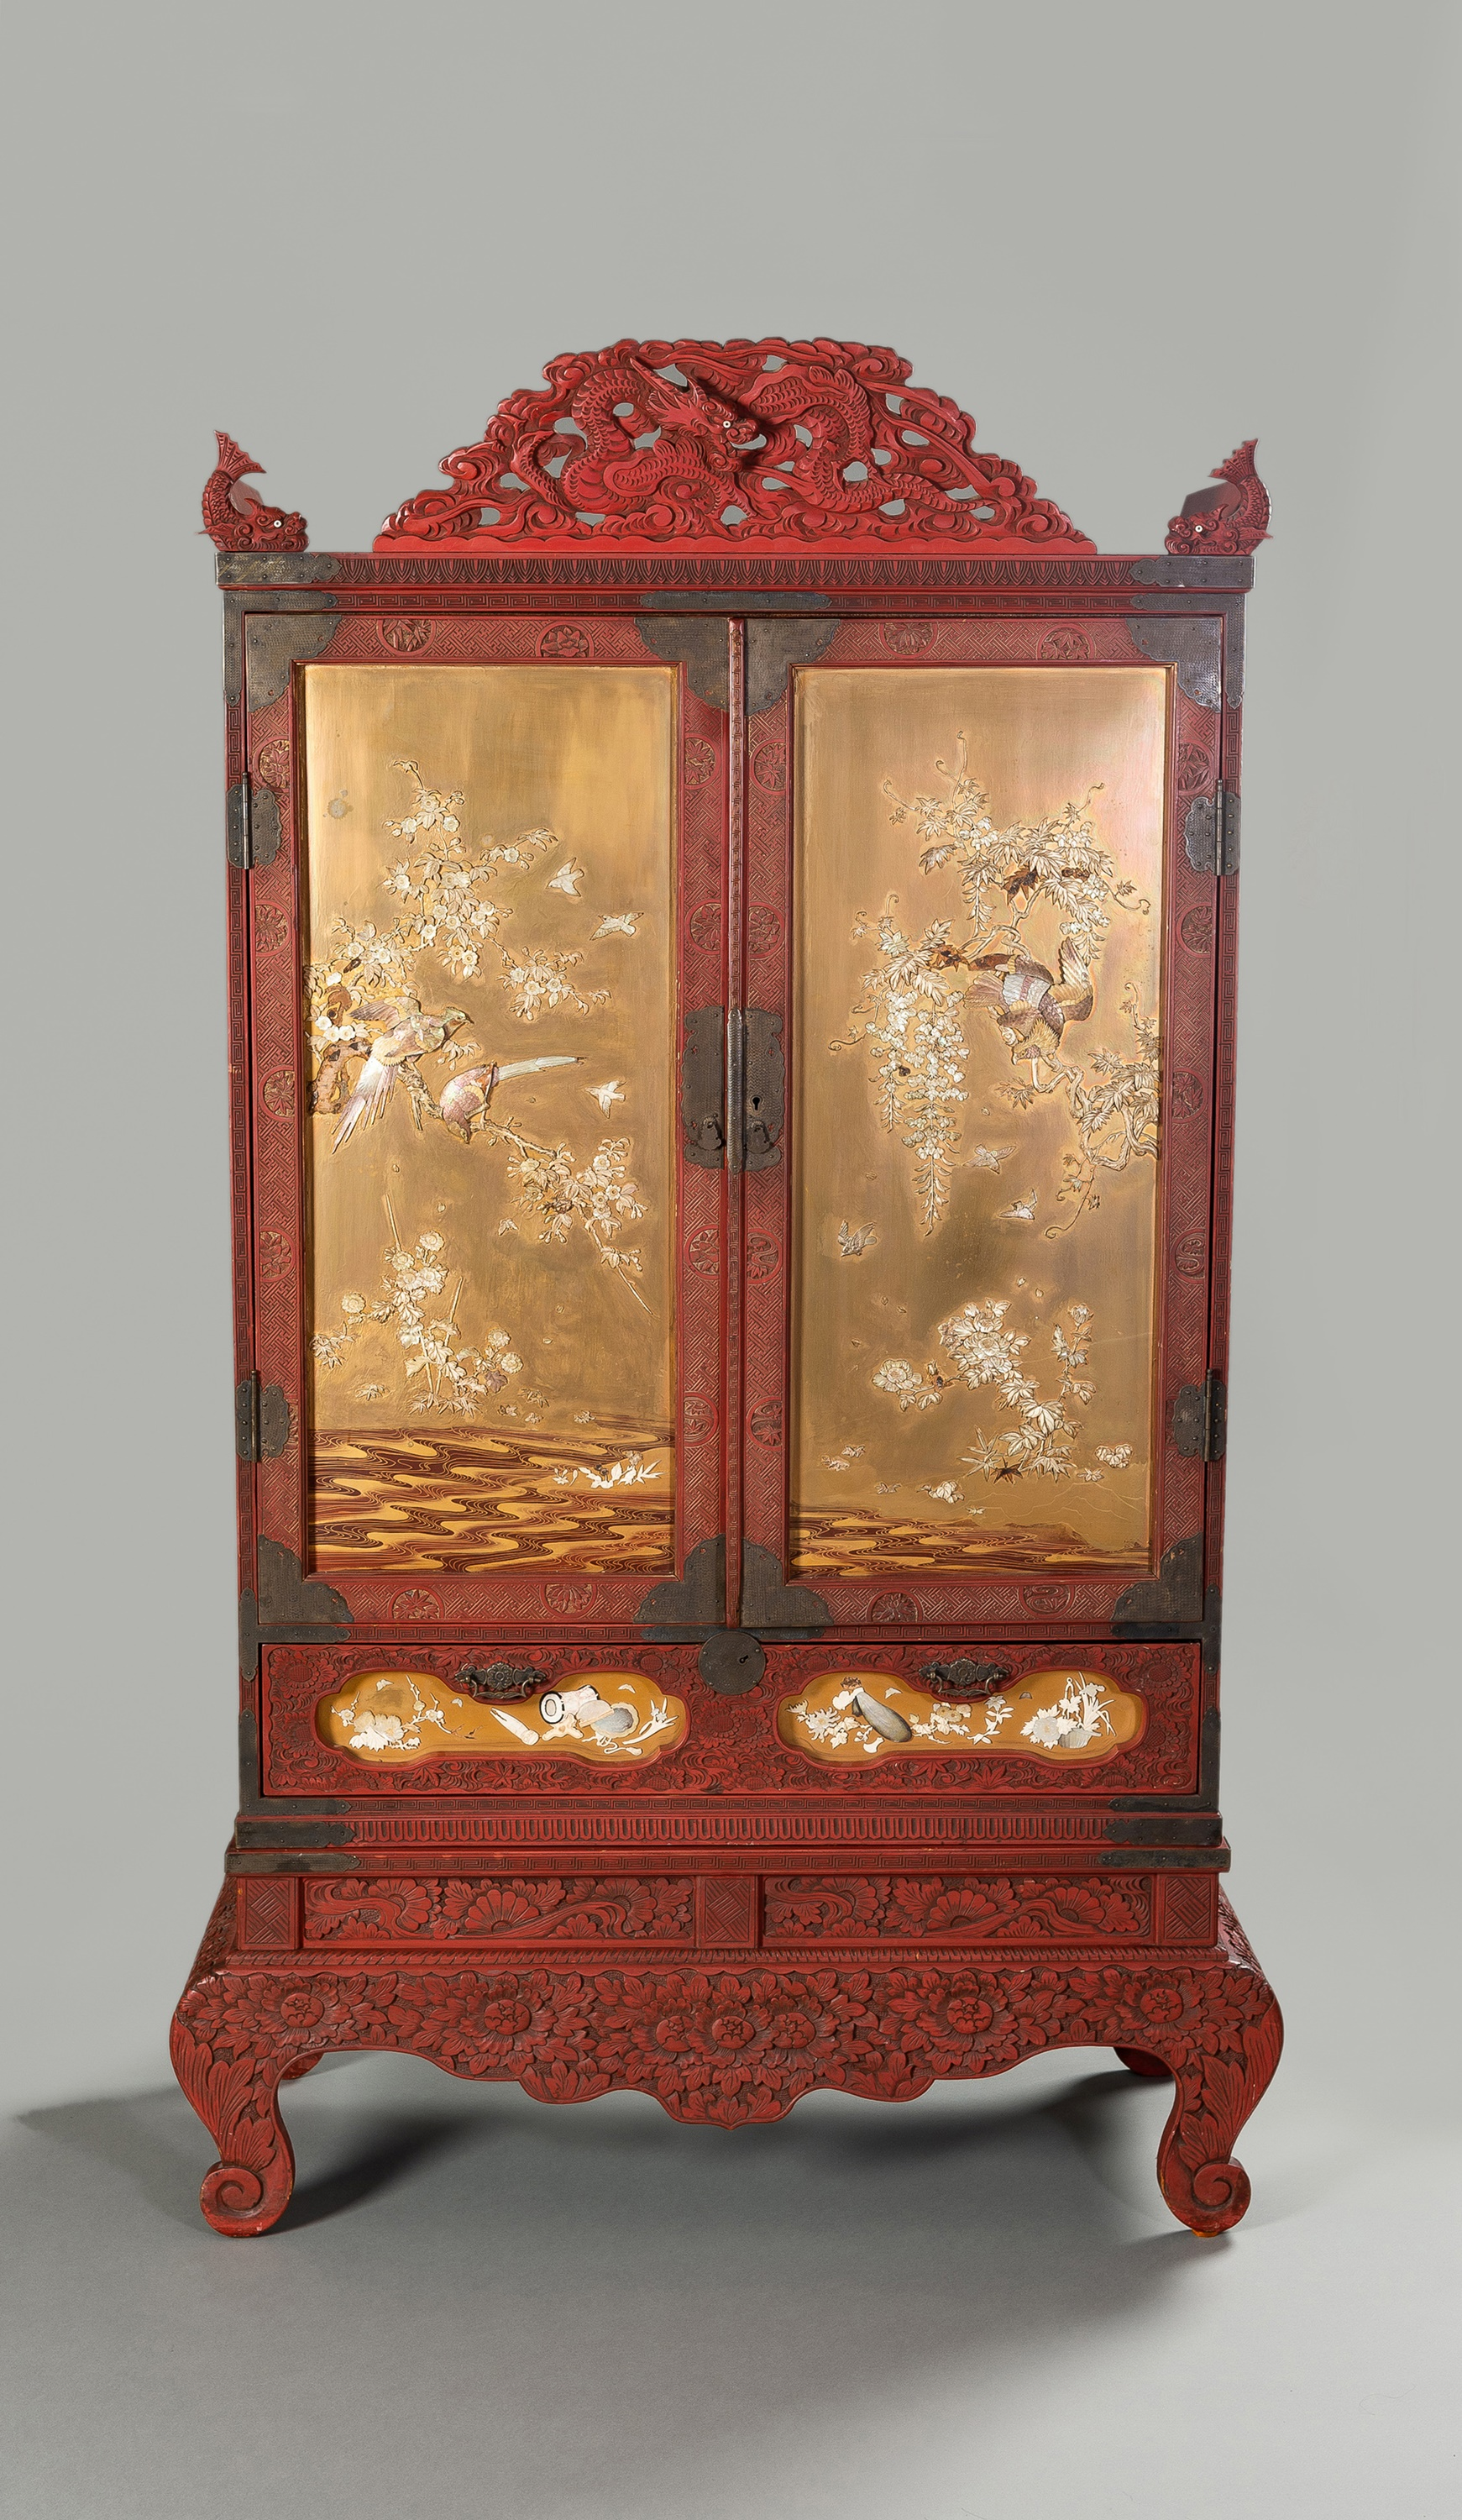 A LARGE AND IMPRESSIVE LACQUER AND SHIBAYAMA CABINET